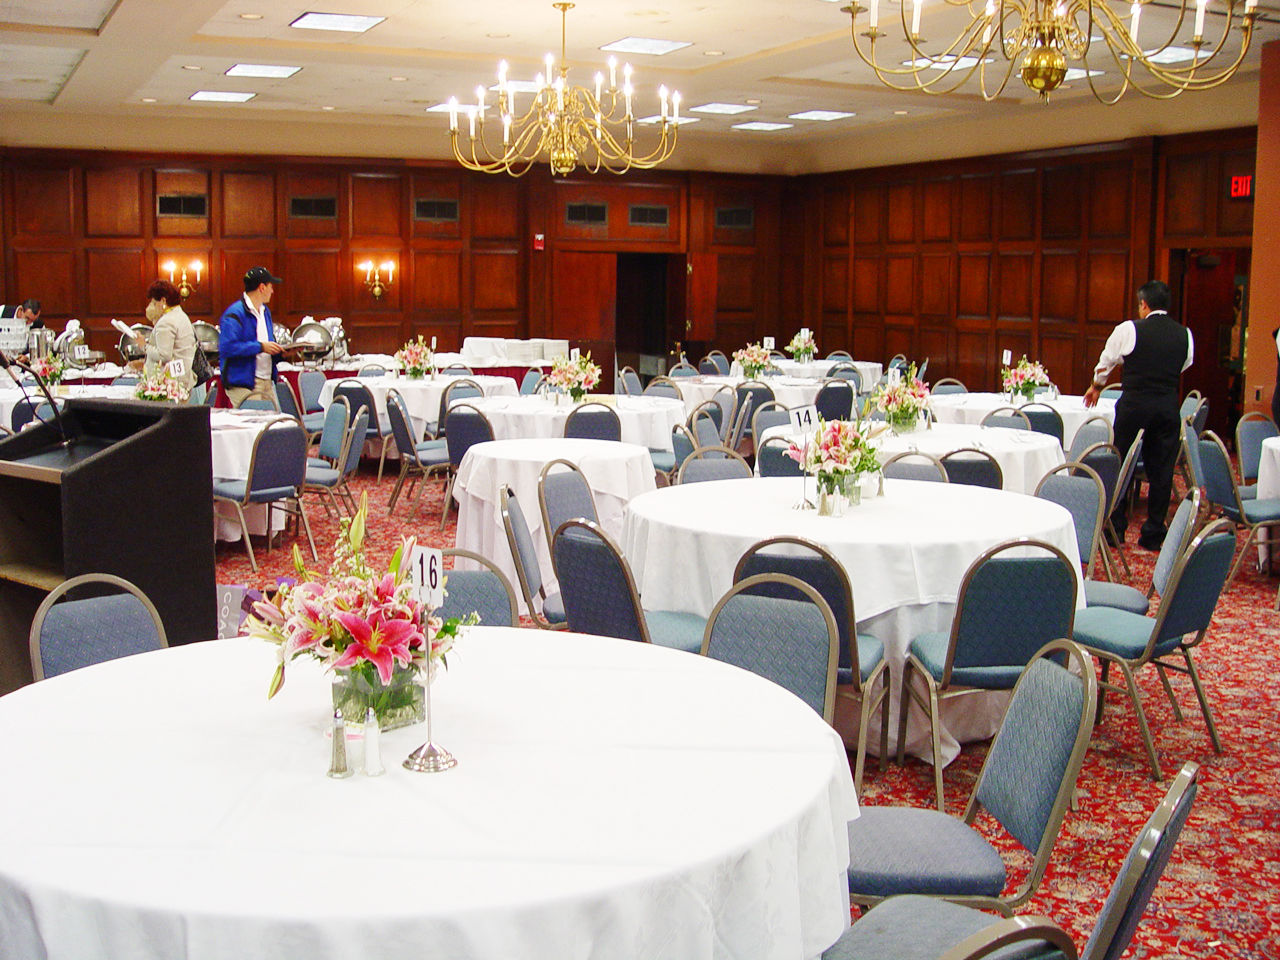 Banquet Rooms Banquet Room Chairs